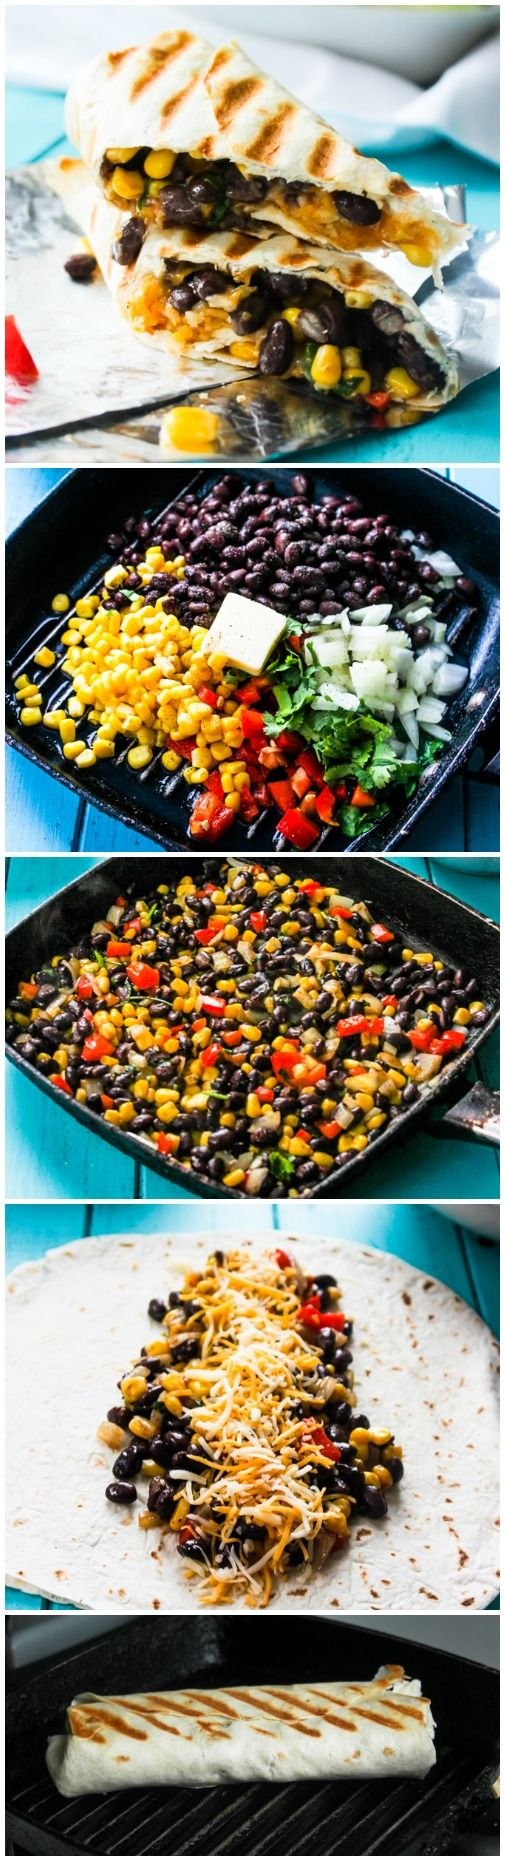 Crispy Black Bean & Rice Burritos // make a bunch to freeze and to keep in the fridge to grab 'n go, tweak to fit your diet #protein #clean #prepday